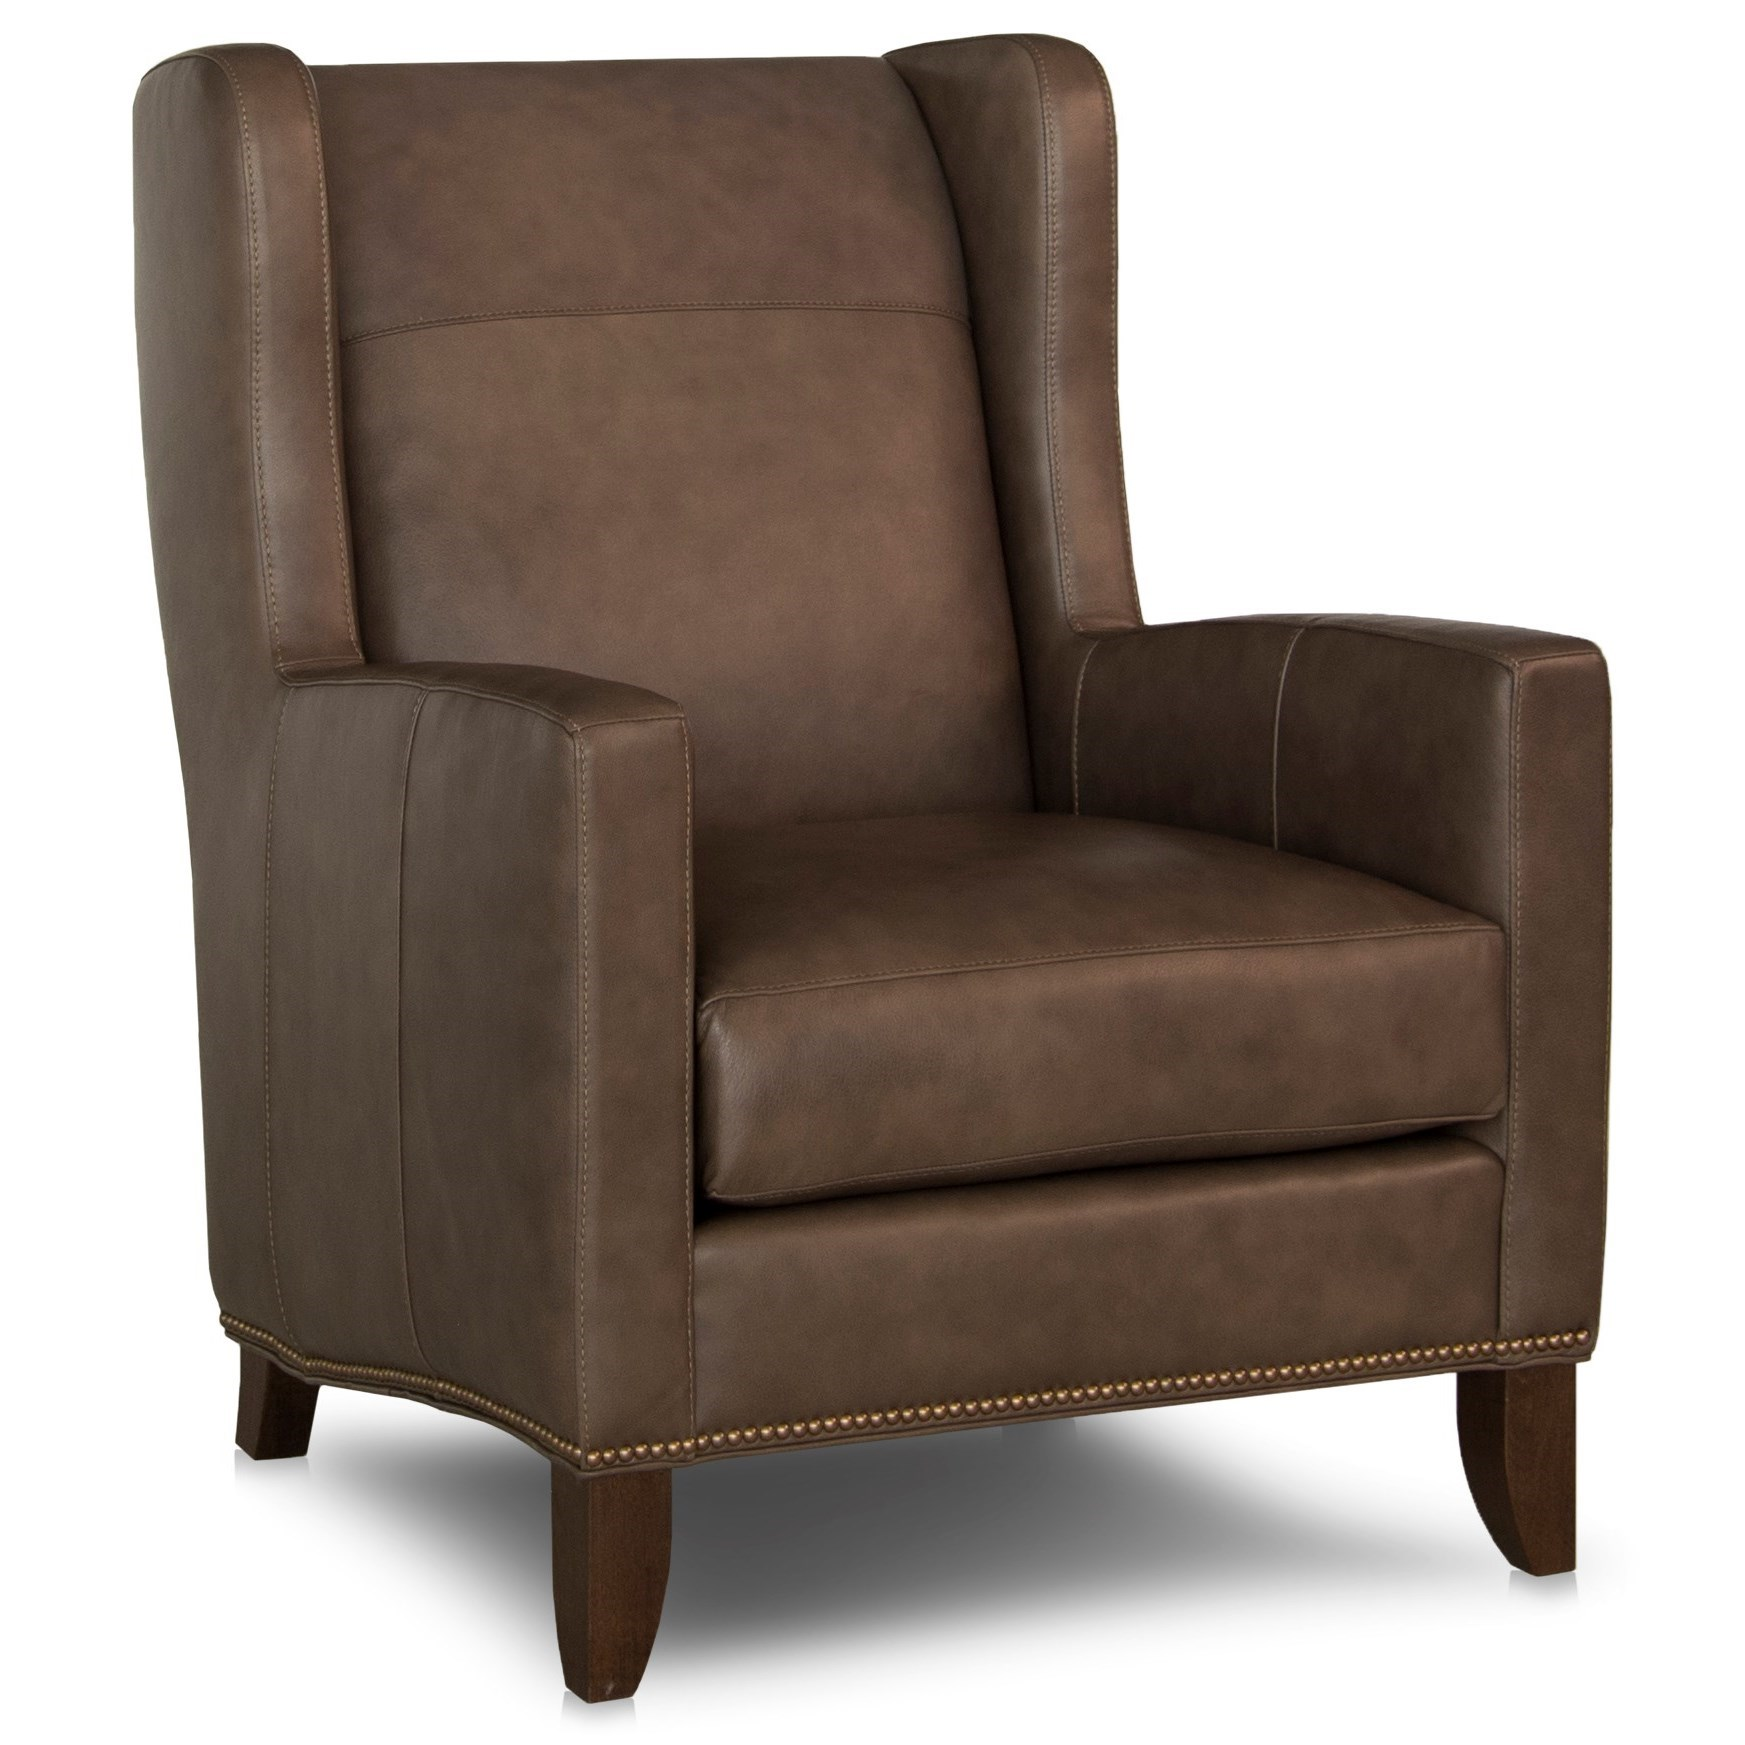 538 Wing Back Chair by Smith Brothers at Sprintz Furniture